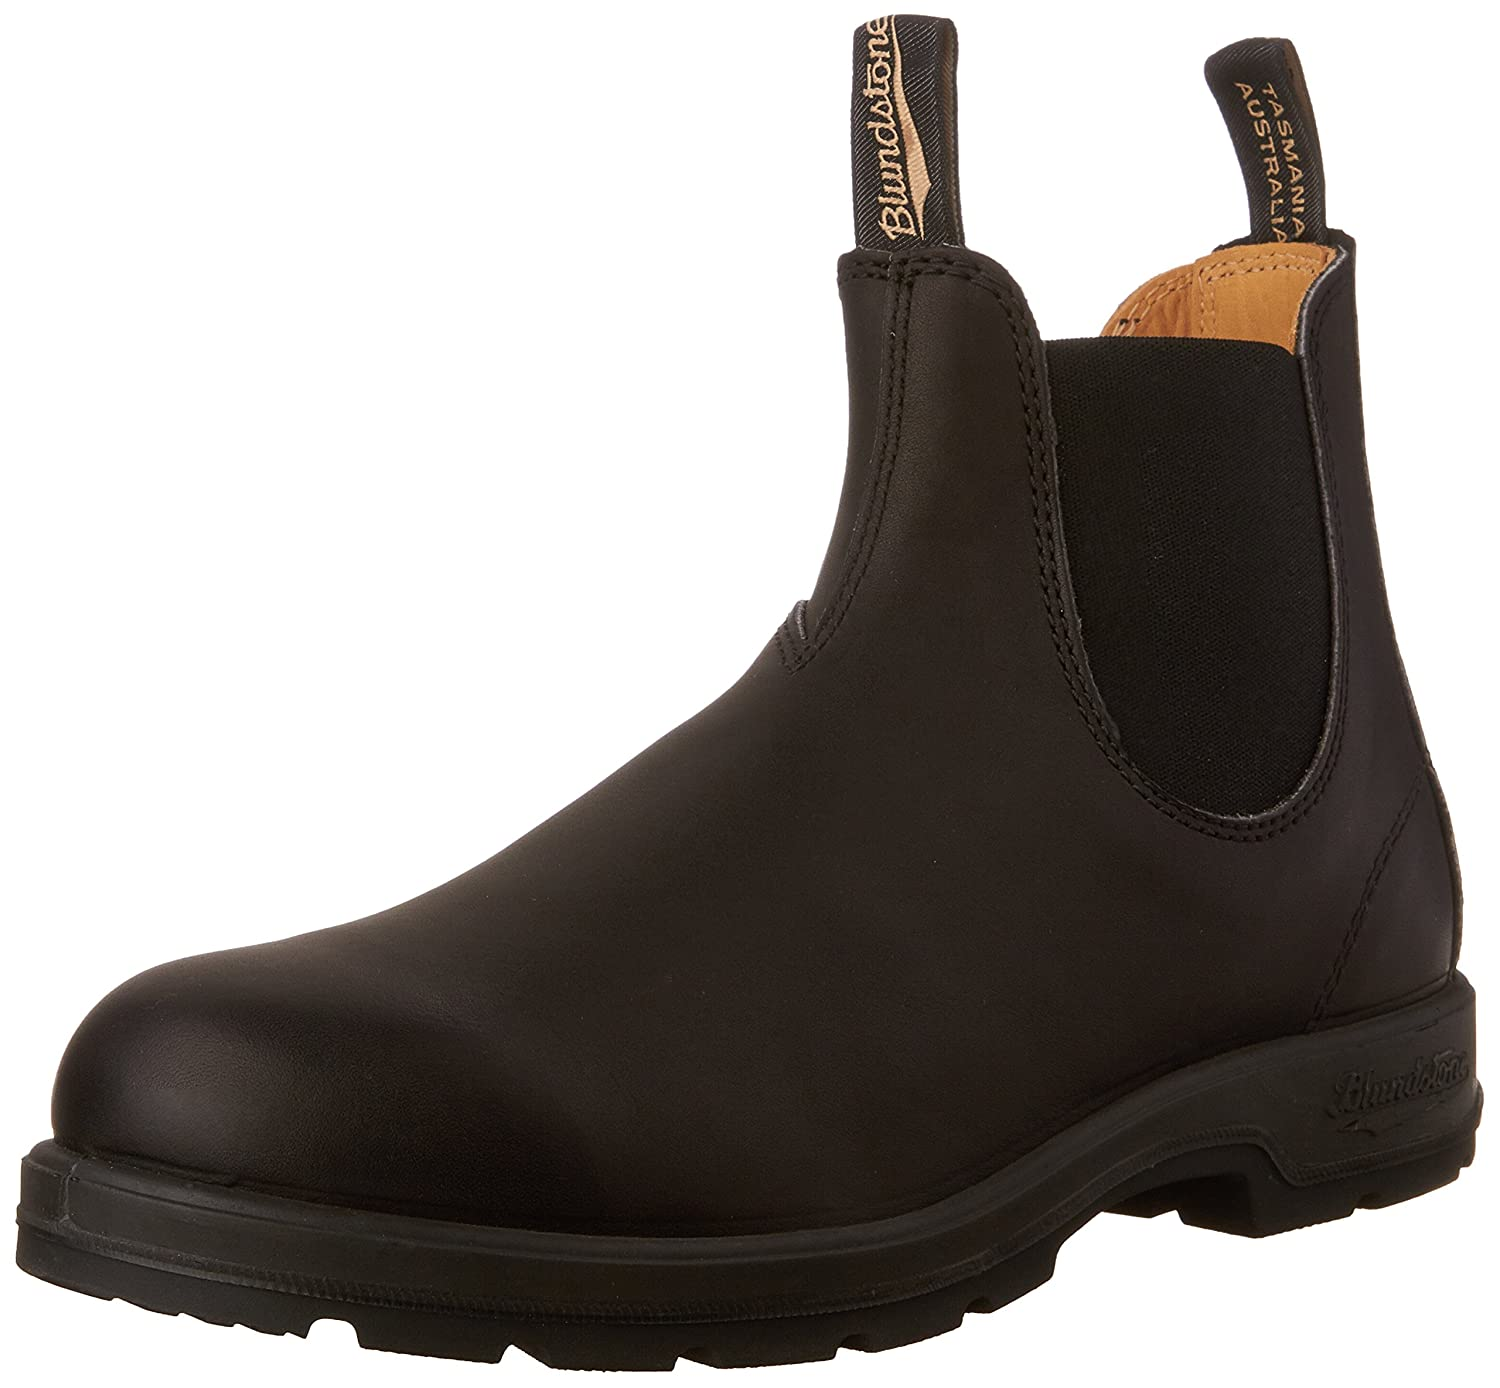 Blundstone Unisex Super 550 Series Boot B0029F27VE 8.5 UK/9.5 M US/11.5 B(M) US|Black